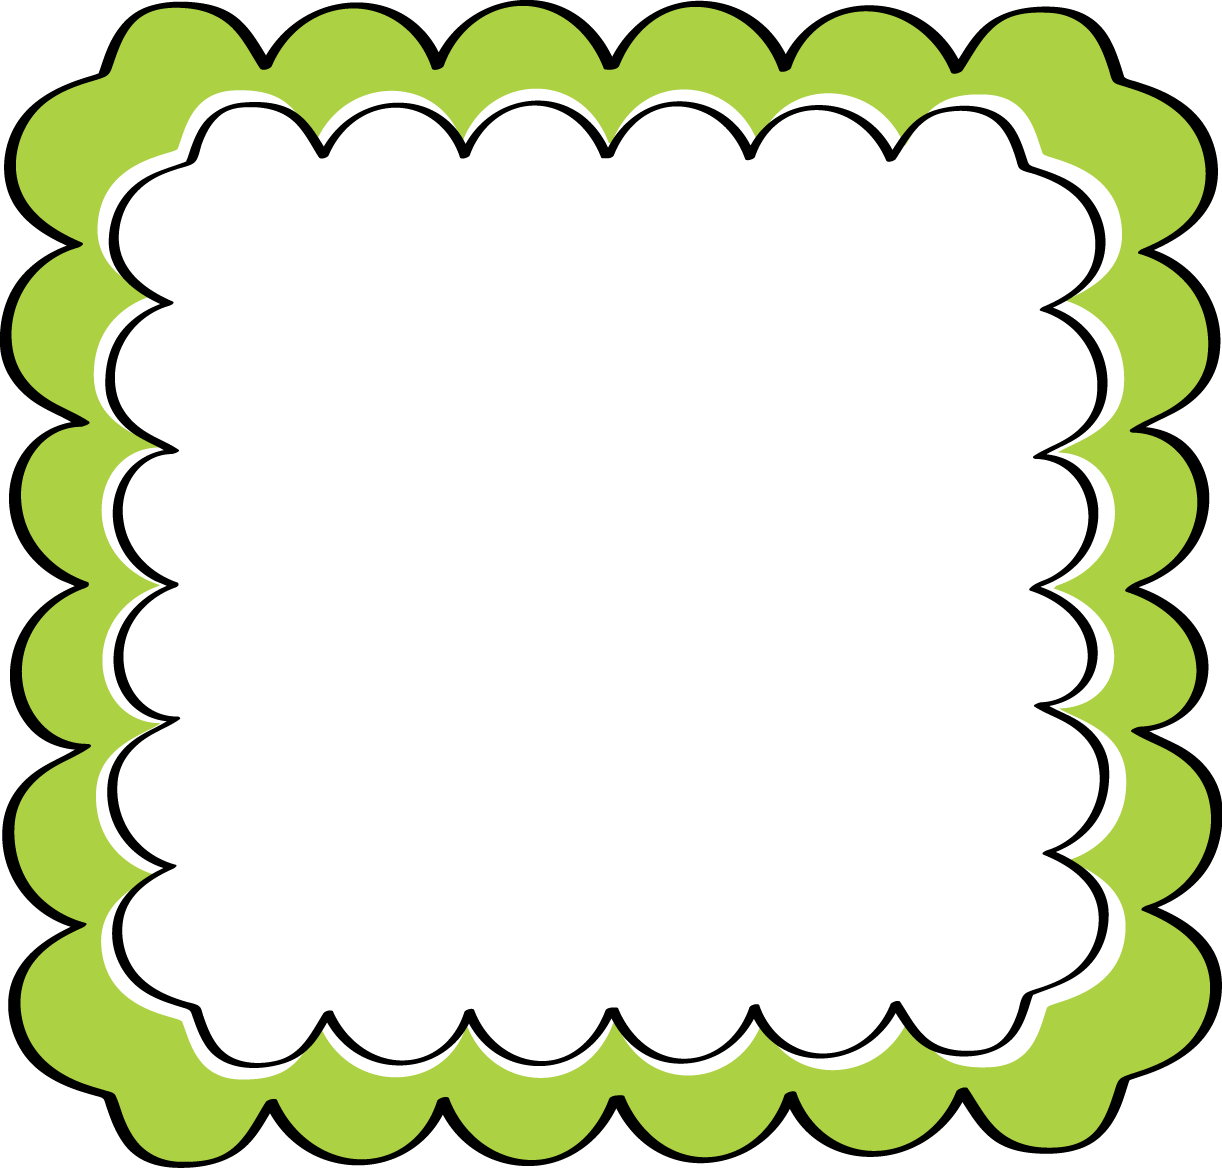 small resolution of school theme border clipart green scalloped frame free clip art frames